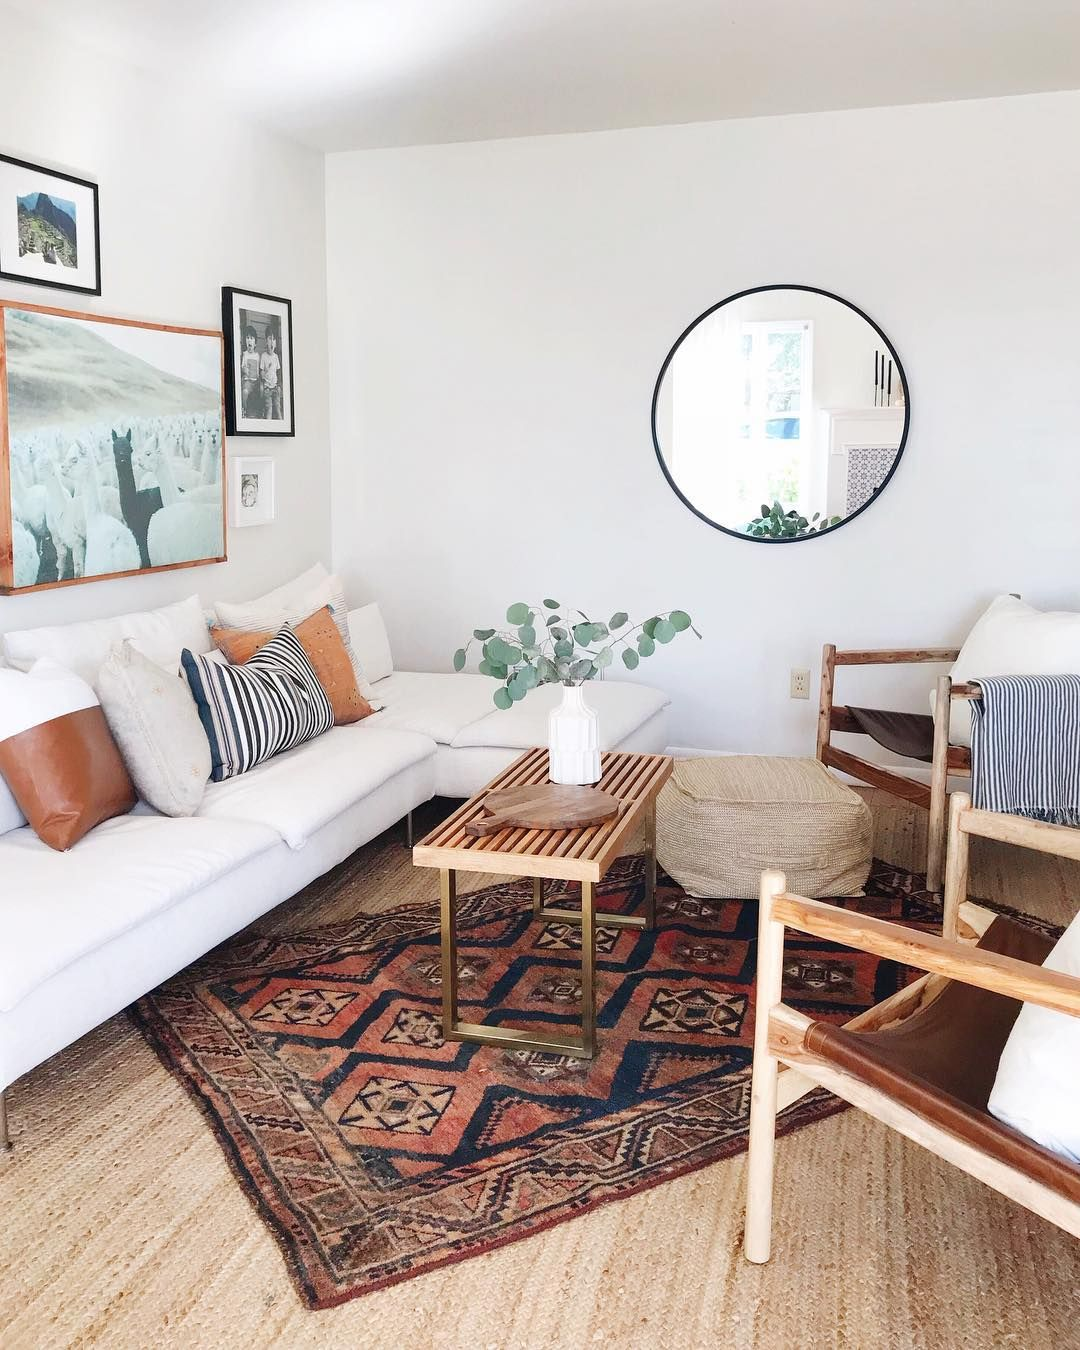 Rebecca Genevieve On Instagram Style Tip If The Rug Is To Small For The Space You Want To Put It In Home Decor Interior Design Living Room Warm Interior